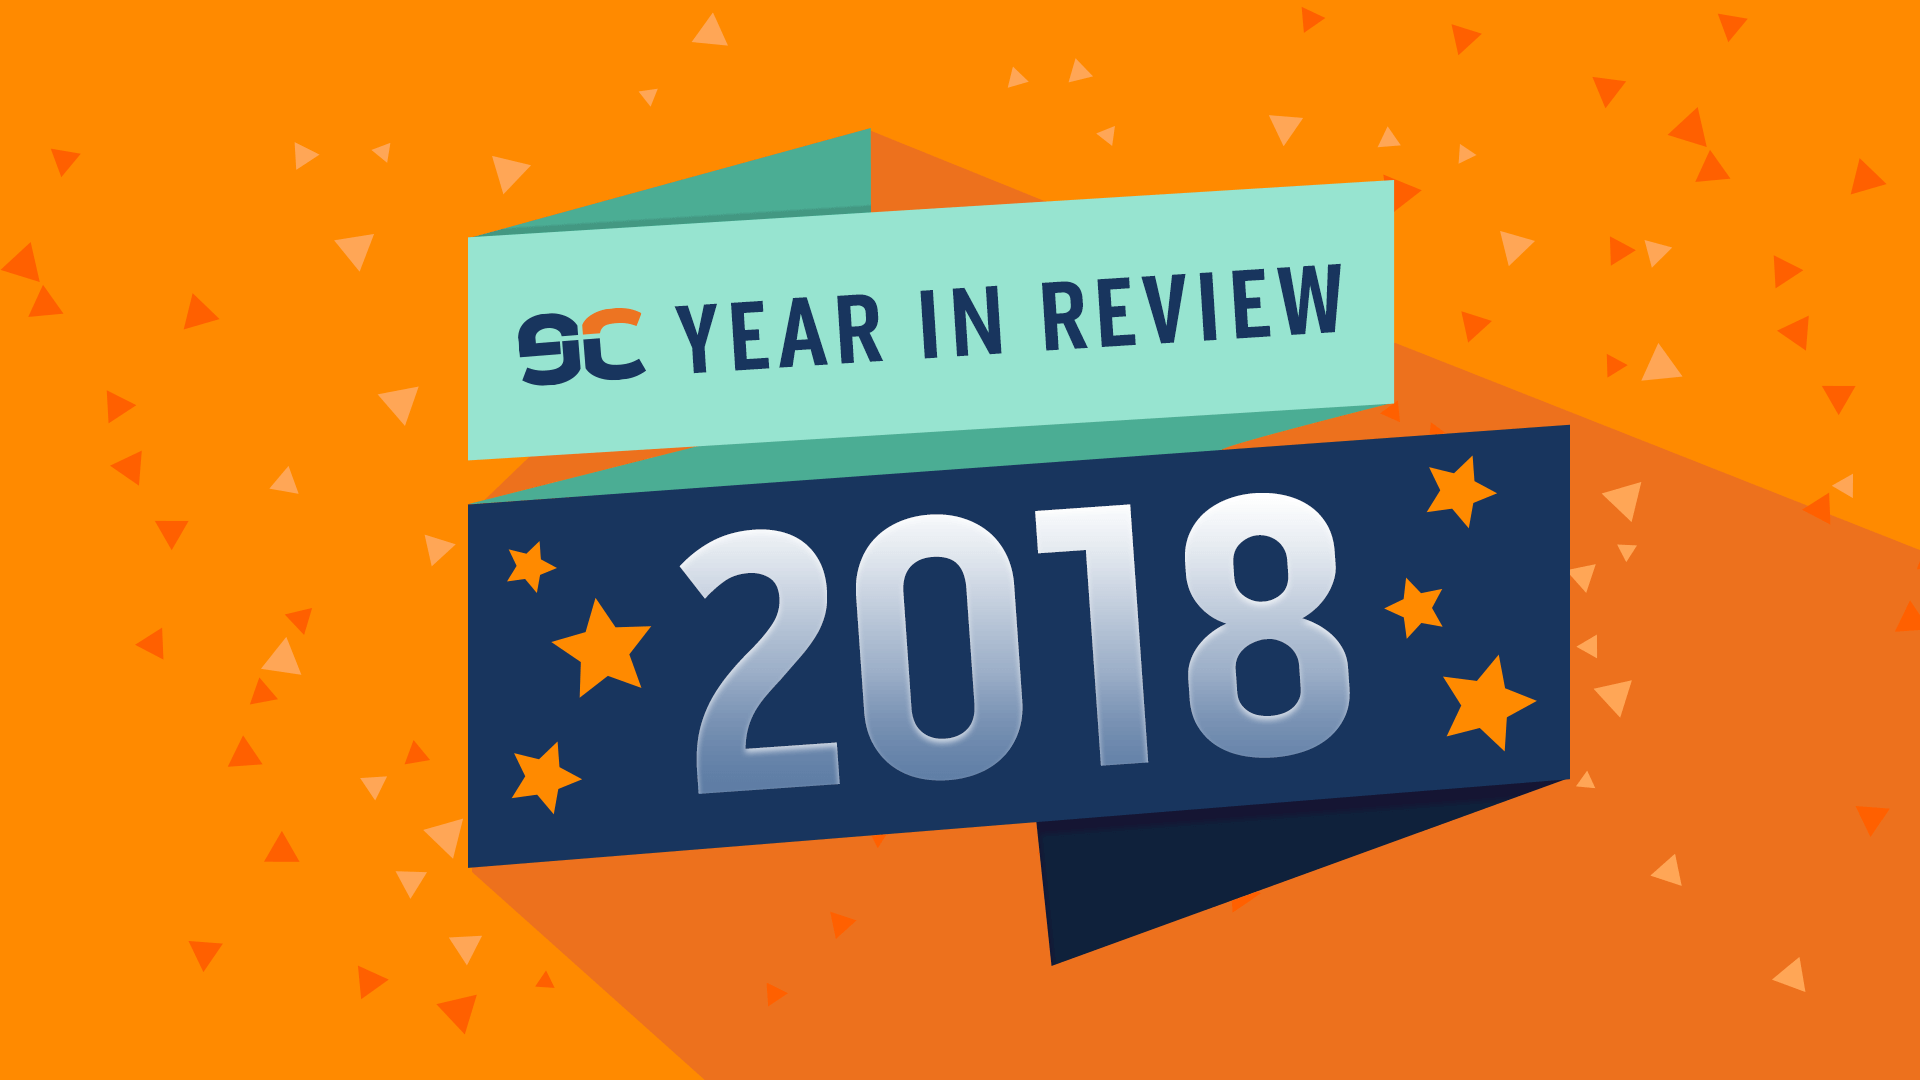 eCatholic Year in Review 2018: Setting you up for future success